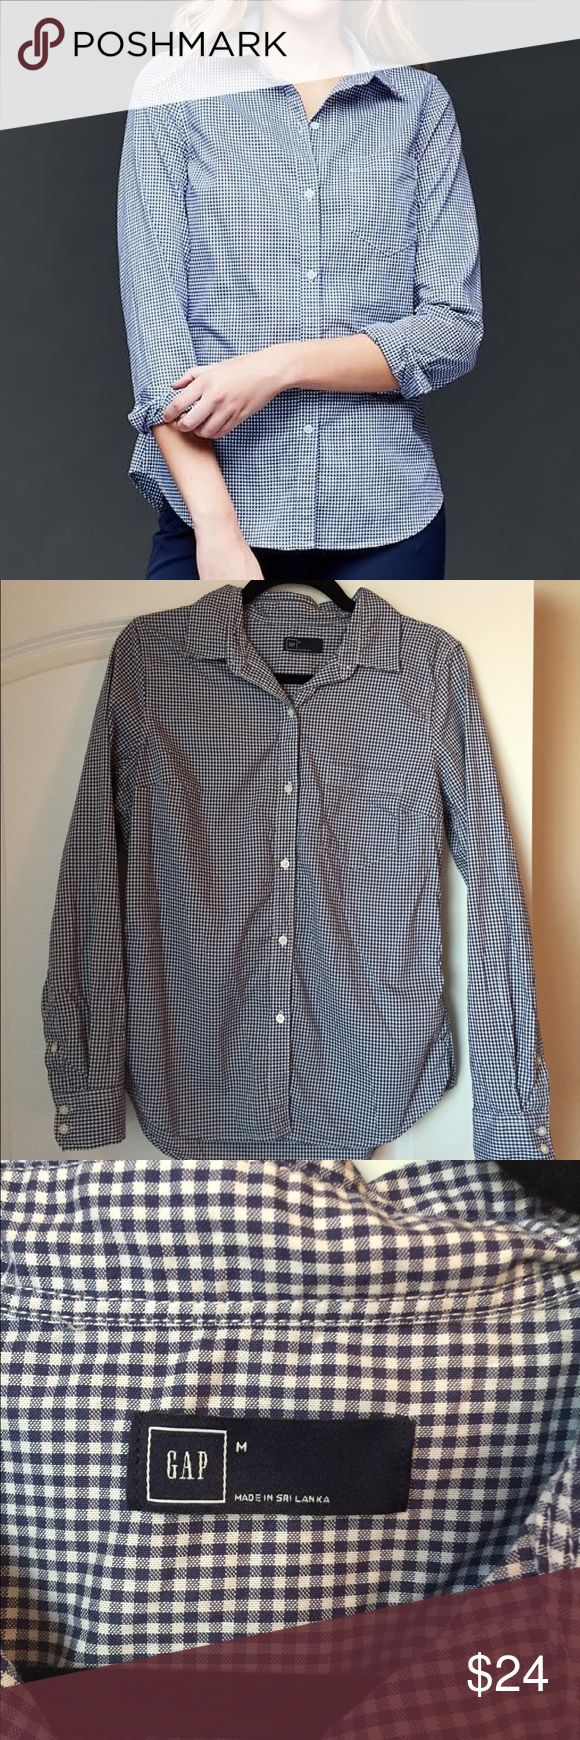 Gap Gingham Oxford Shirt Gap Fitted Boyfriend Gingham Oxford Shirt • Great Condition • Size Medium GAP Tops Button Down Shirts